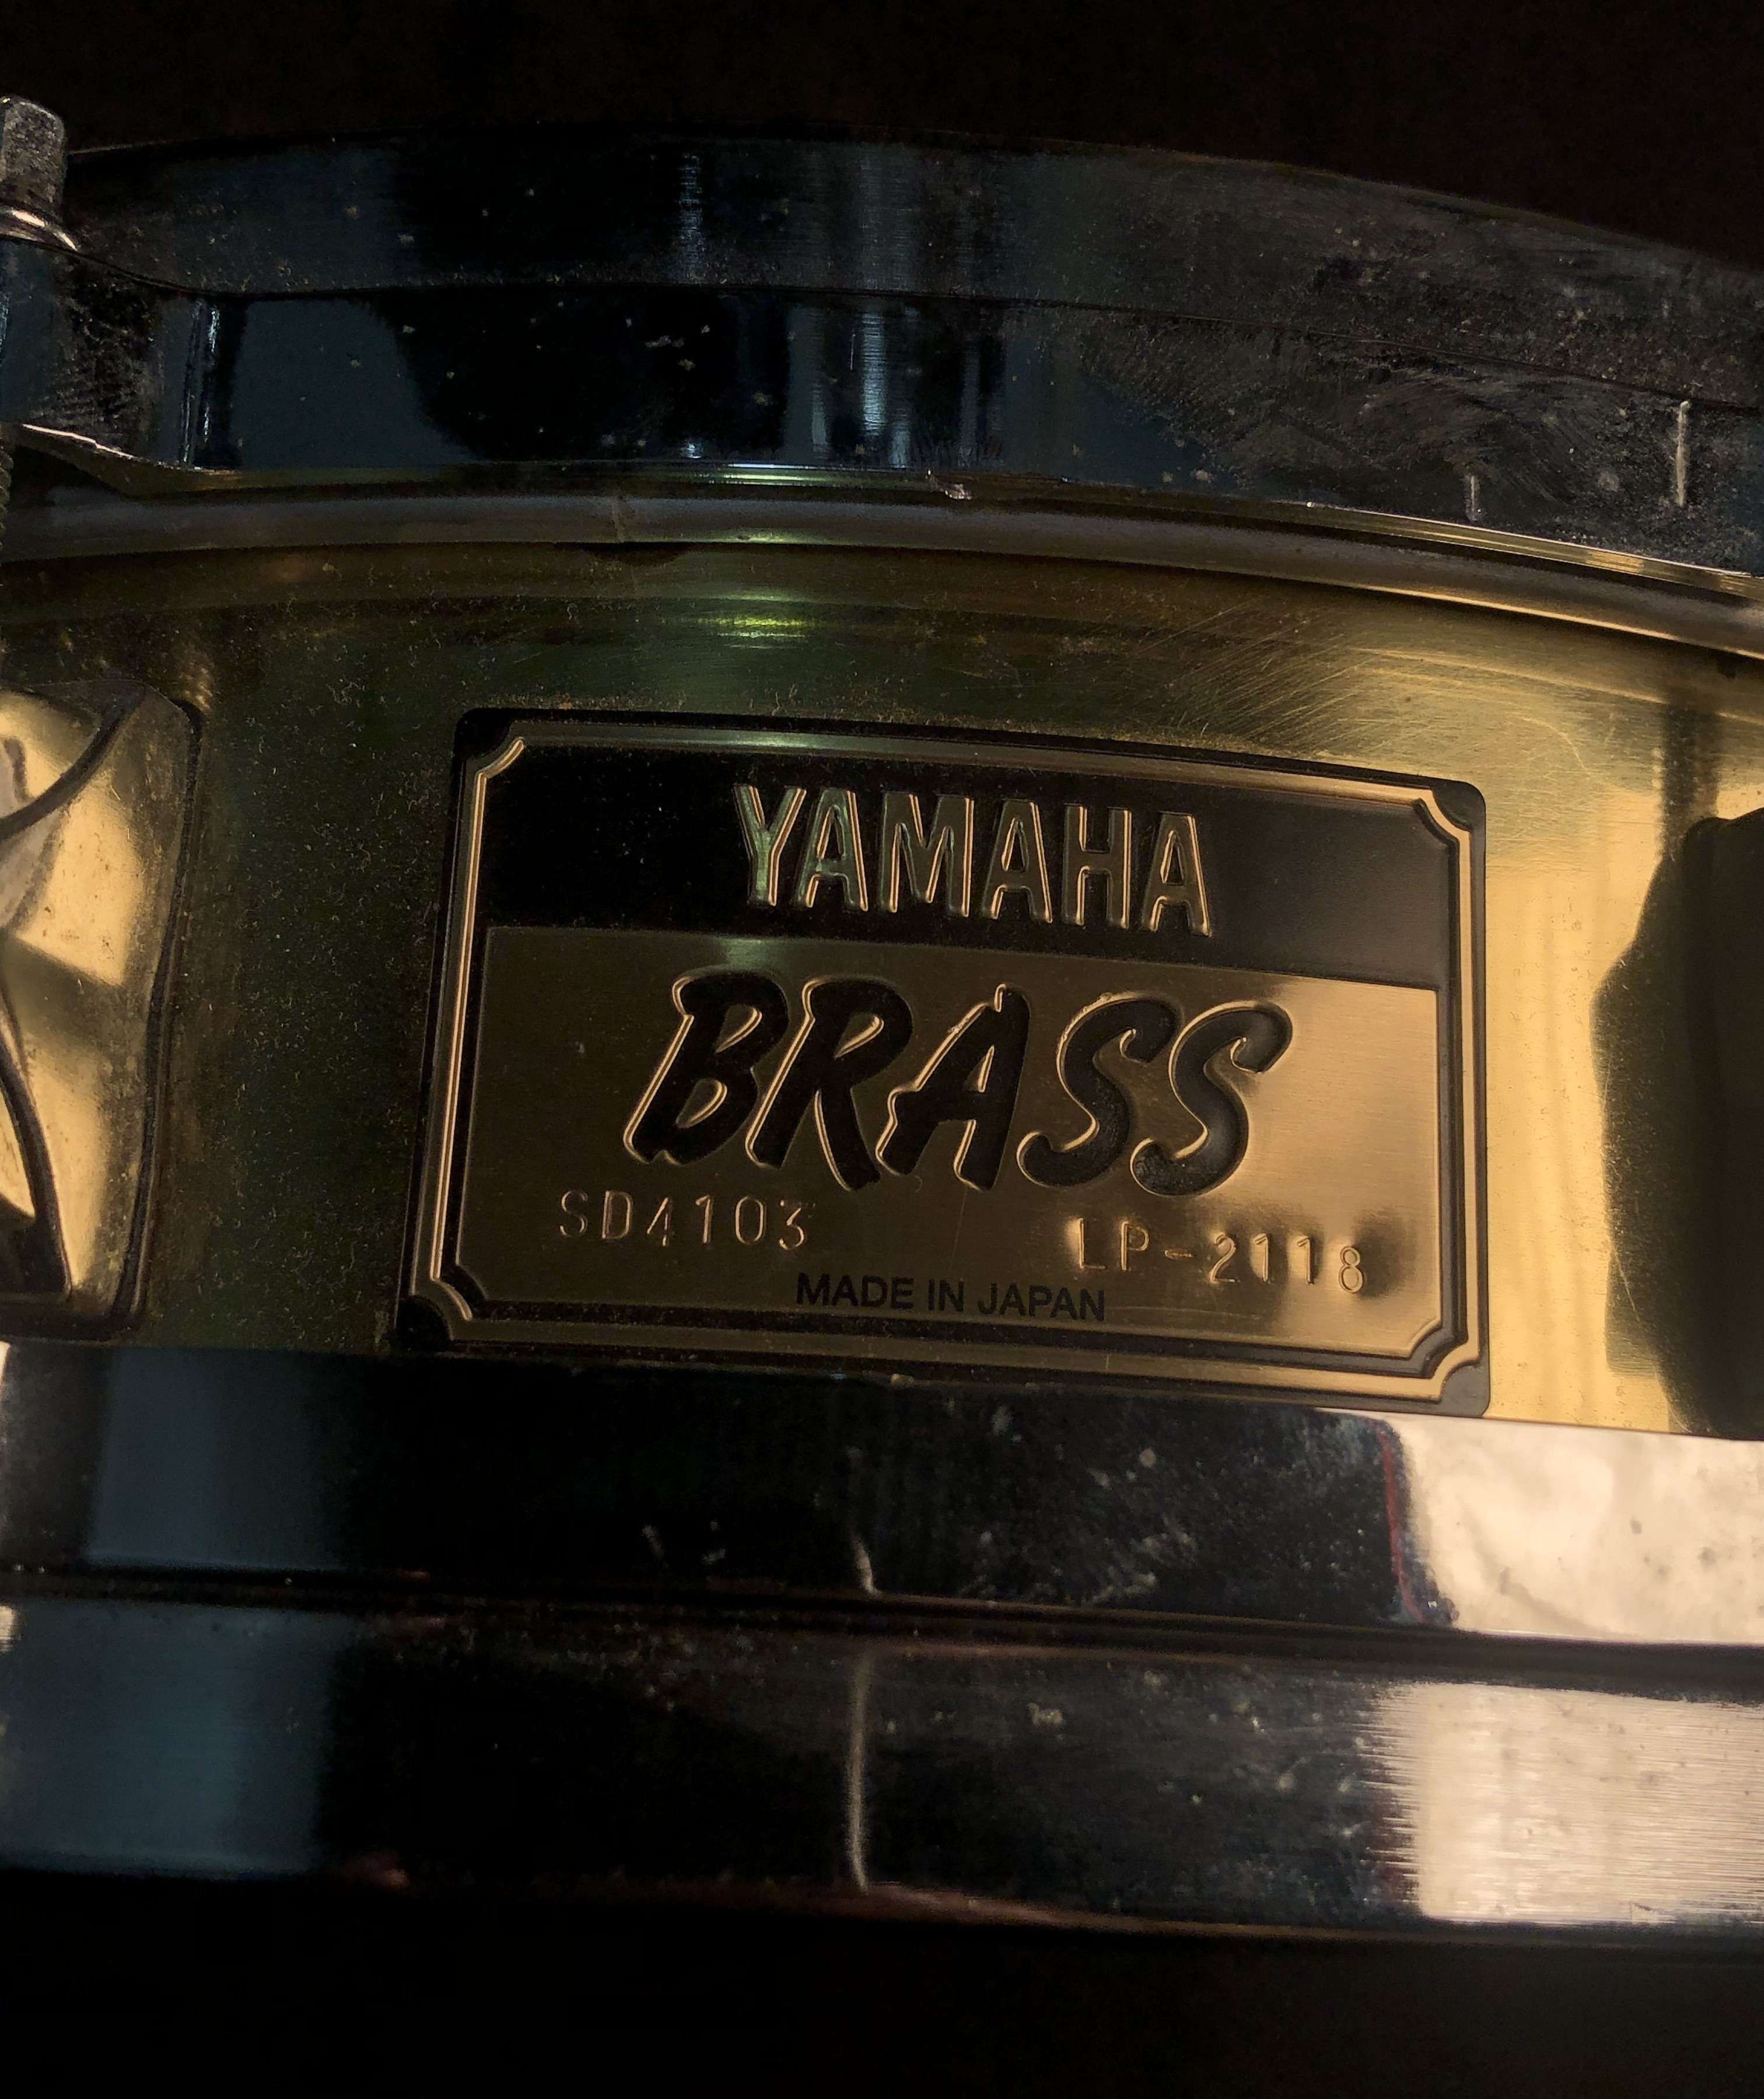 YAMAHA - Brass Piccolo Snare Drum 14